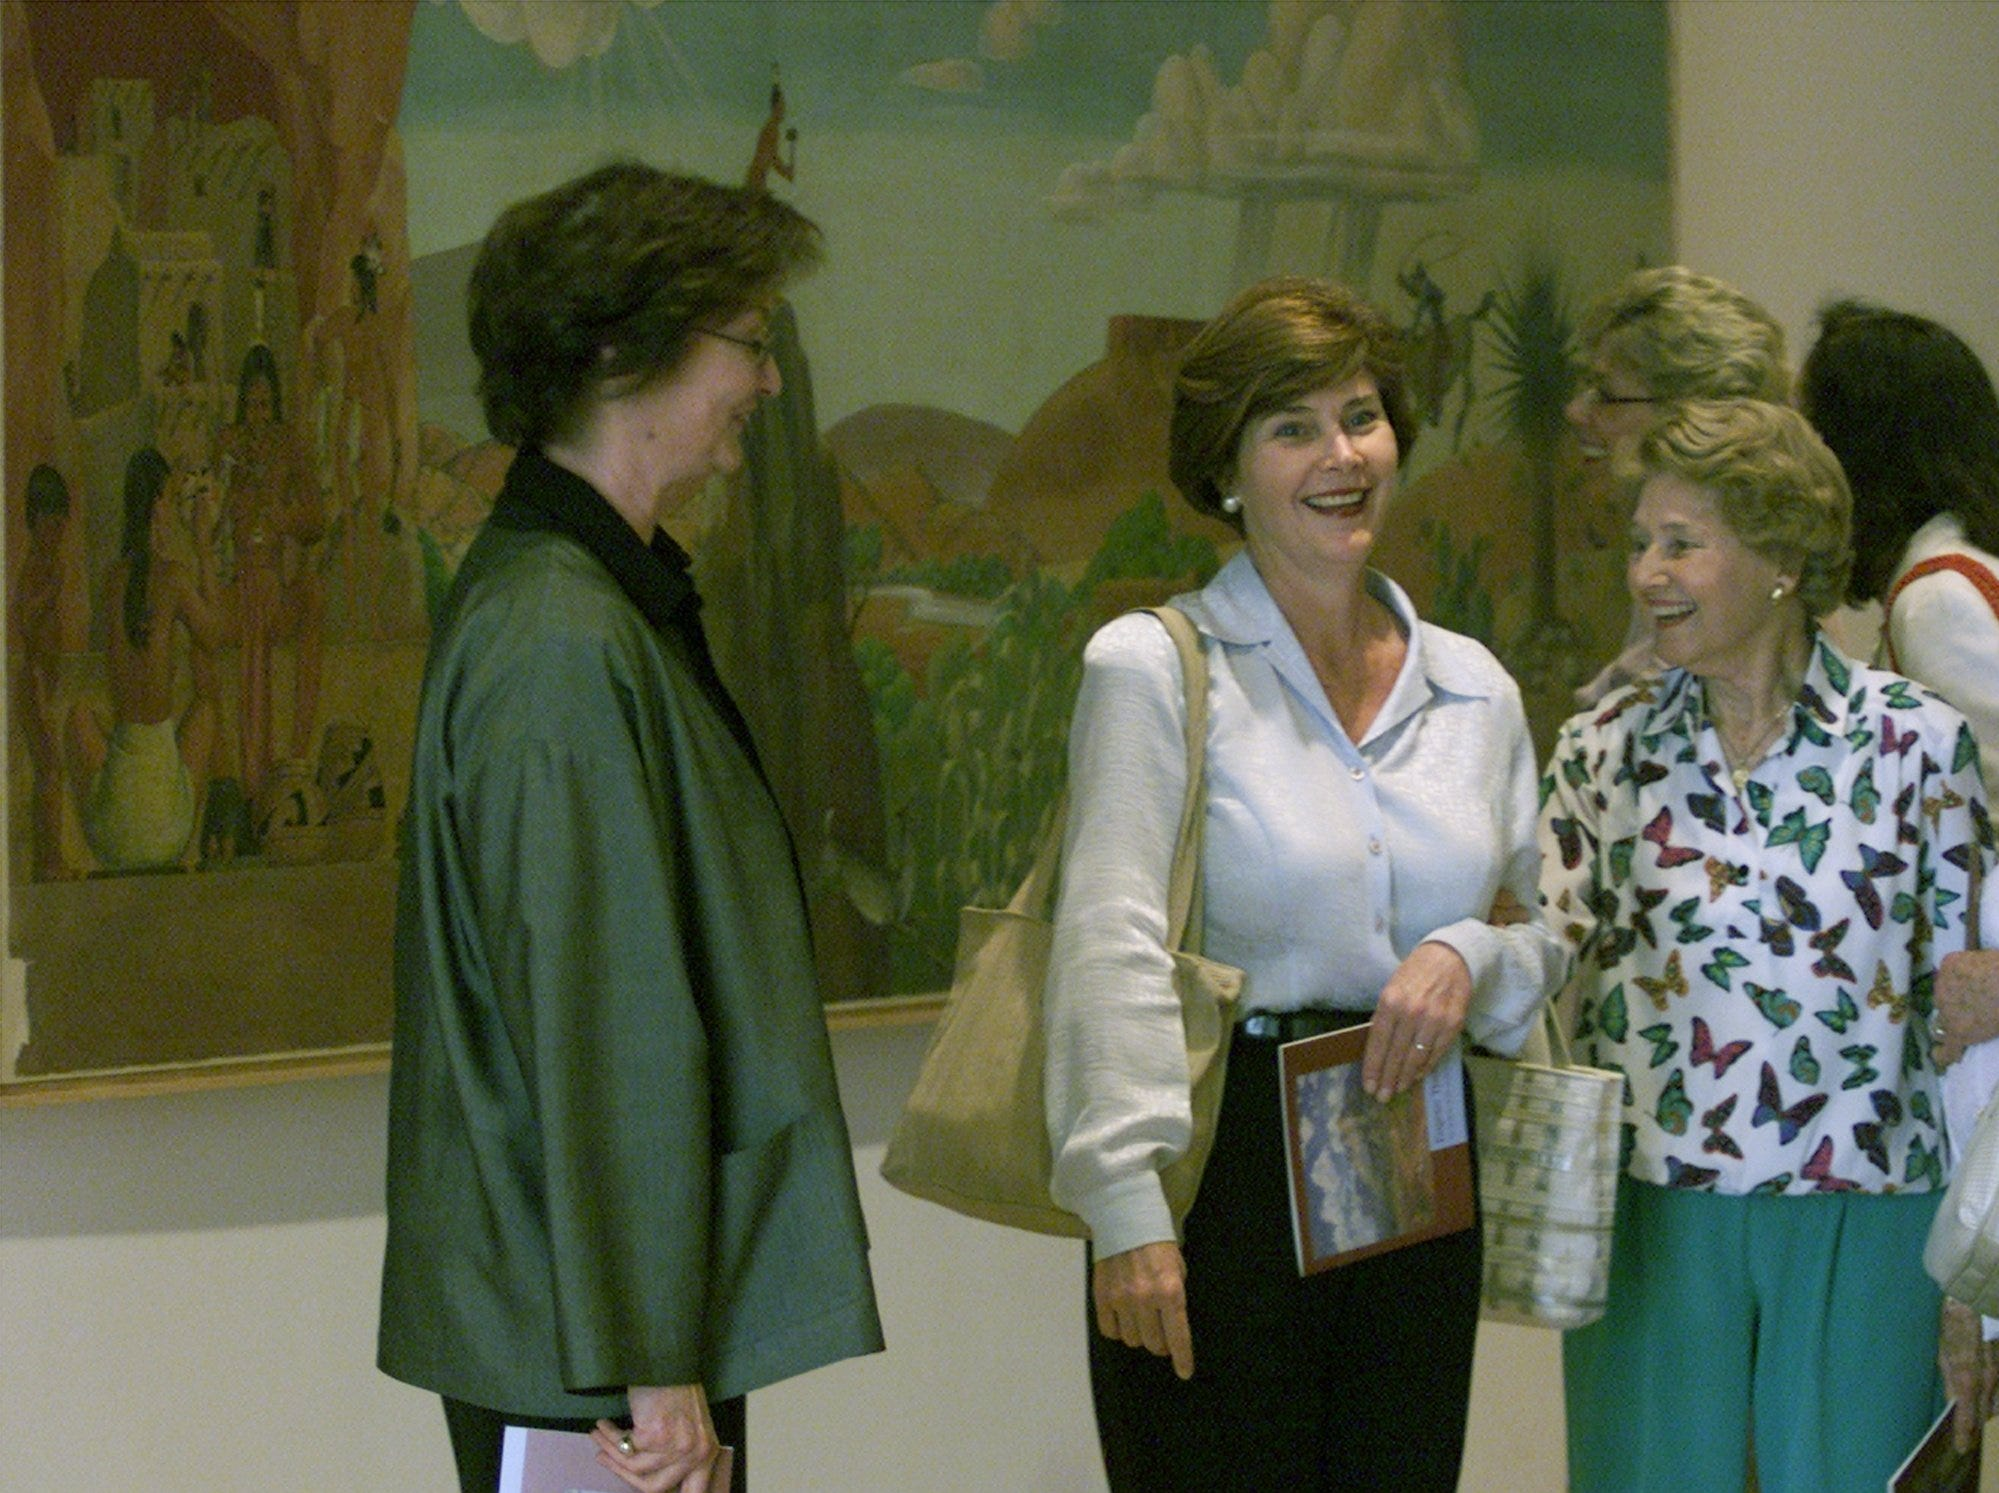 5/18/2000 Laura Bush, center, wife of Texas Gov. George W. Bush, toured the El Paso Museum of Art with her mother, Jenna Welch, right, and muesum director Becky Duval Reese, left, during a visit to El Paso Wednesday.